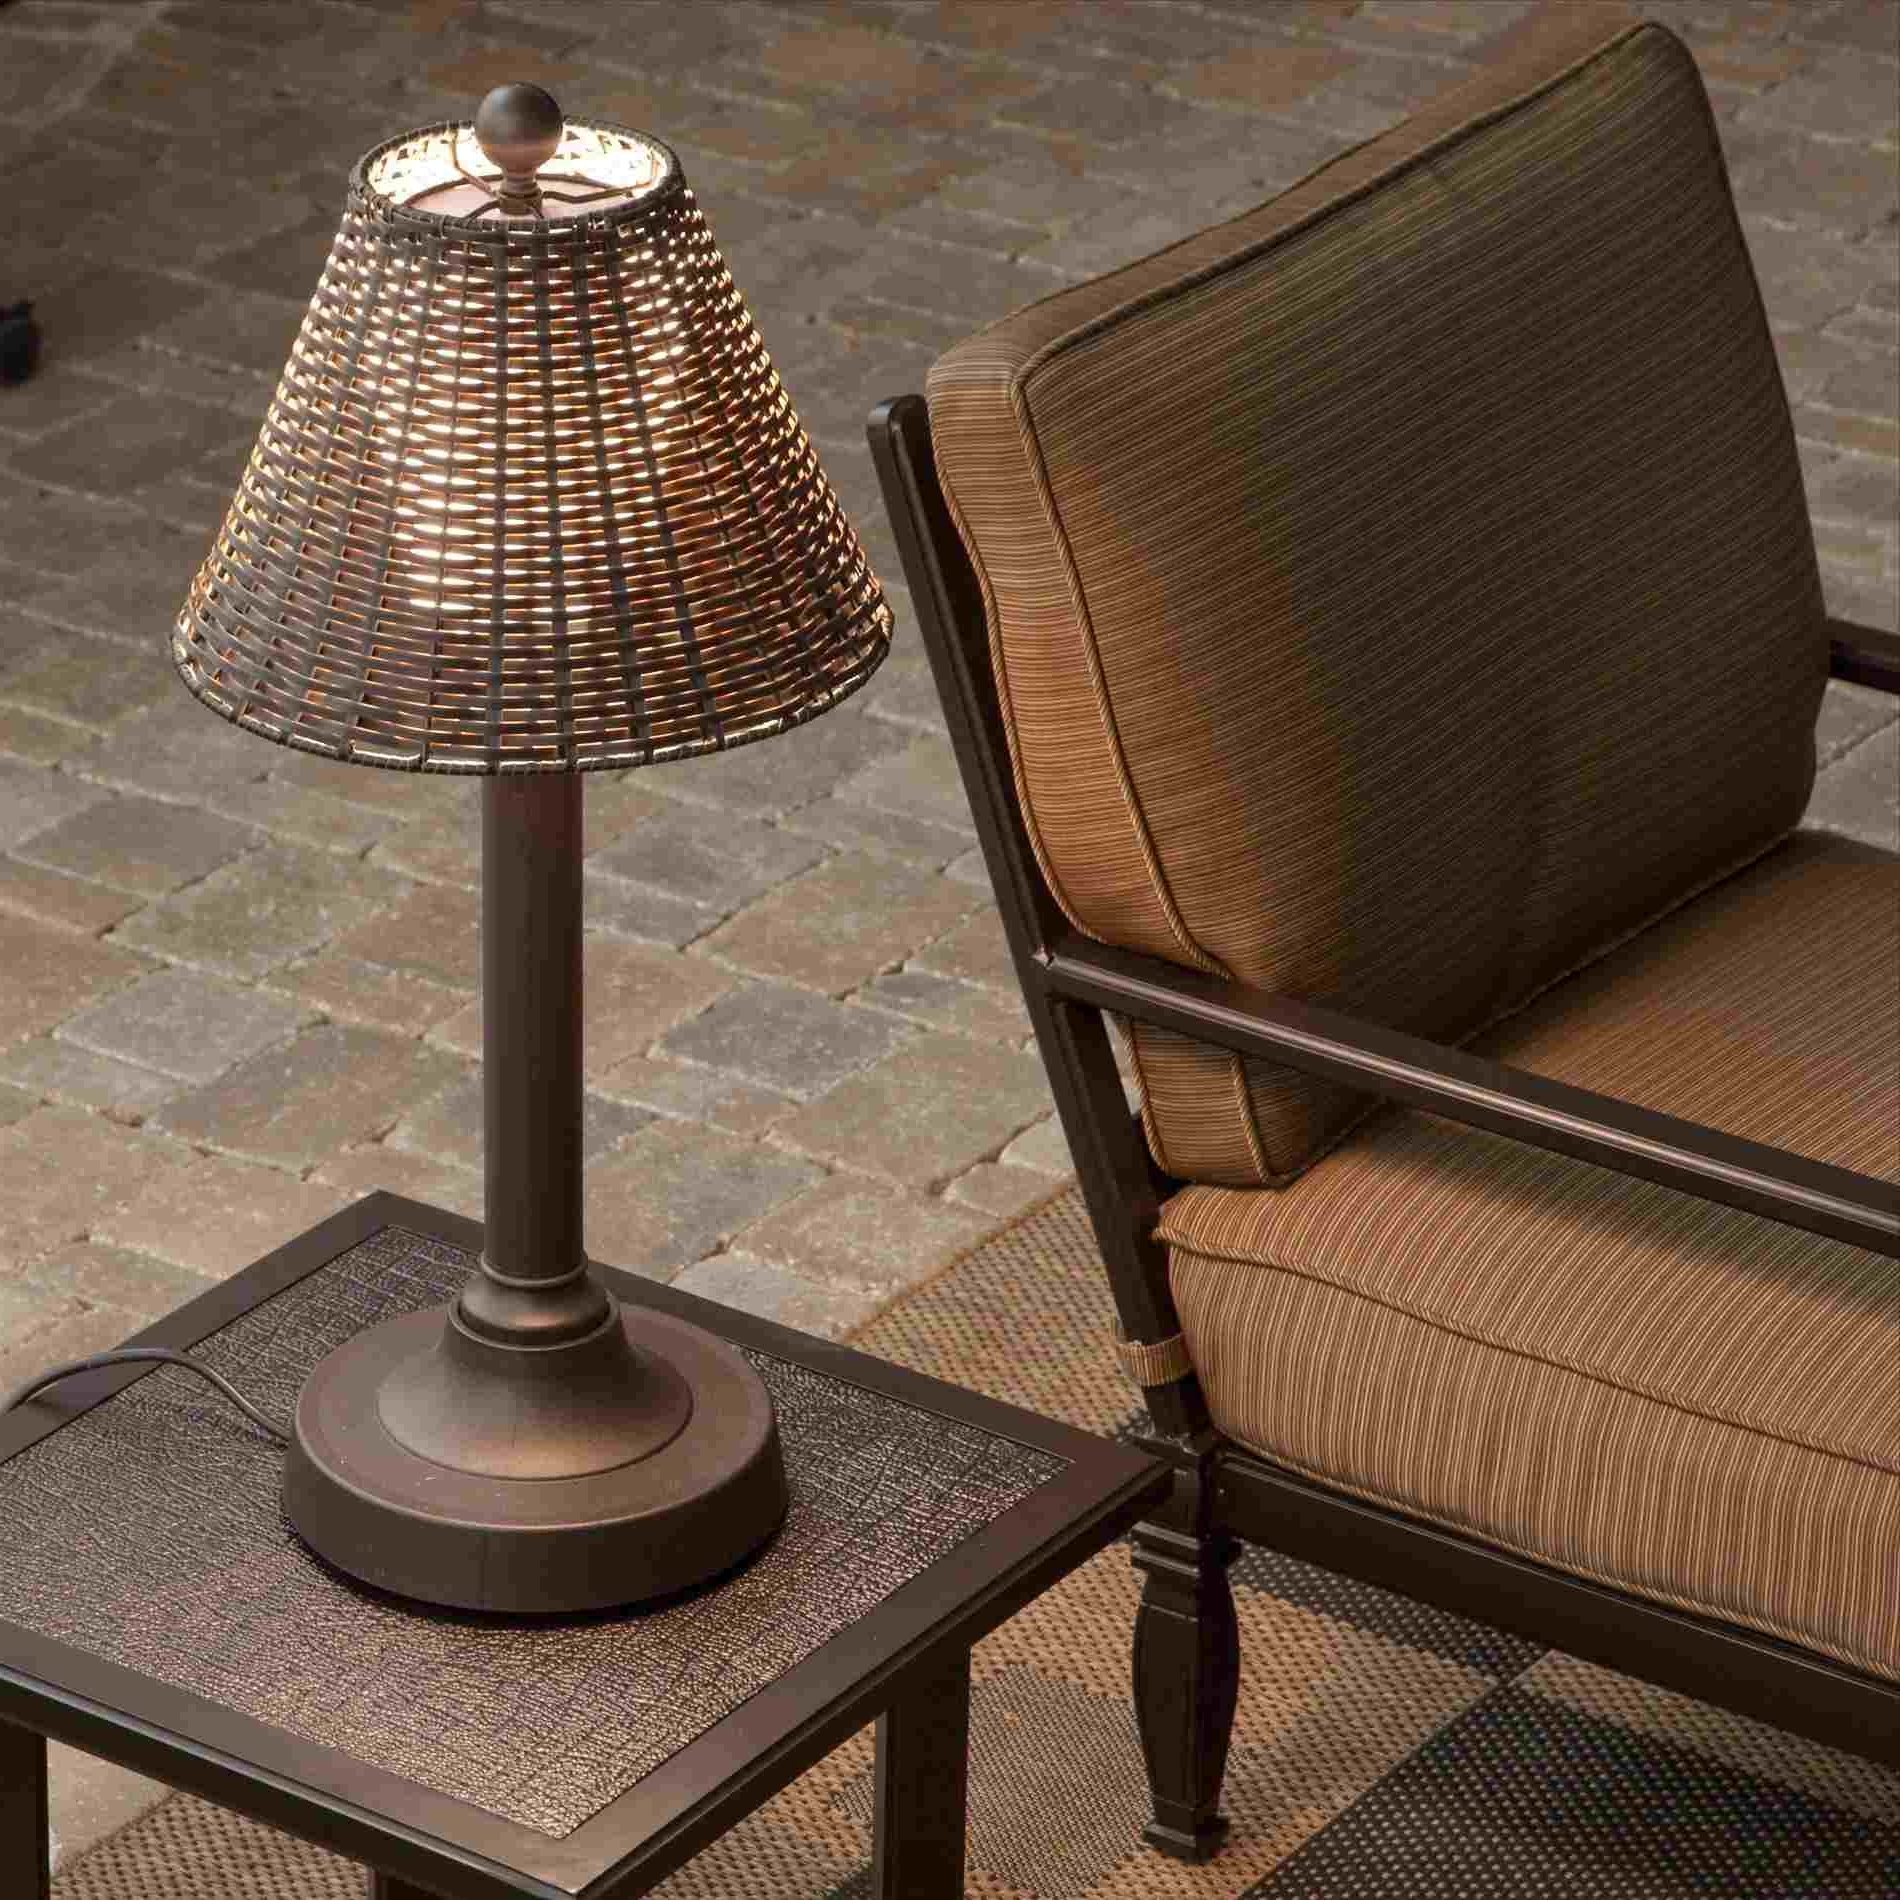 Red Rhfhpcmancom Lighting Diy Outdoor Lamp Shade Delightful Pendant With Regard To 2018 Outdoor Lanterns For Tables (View 7 of 20)